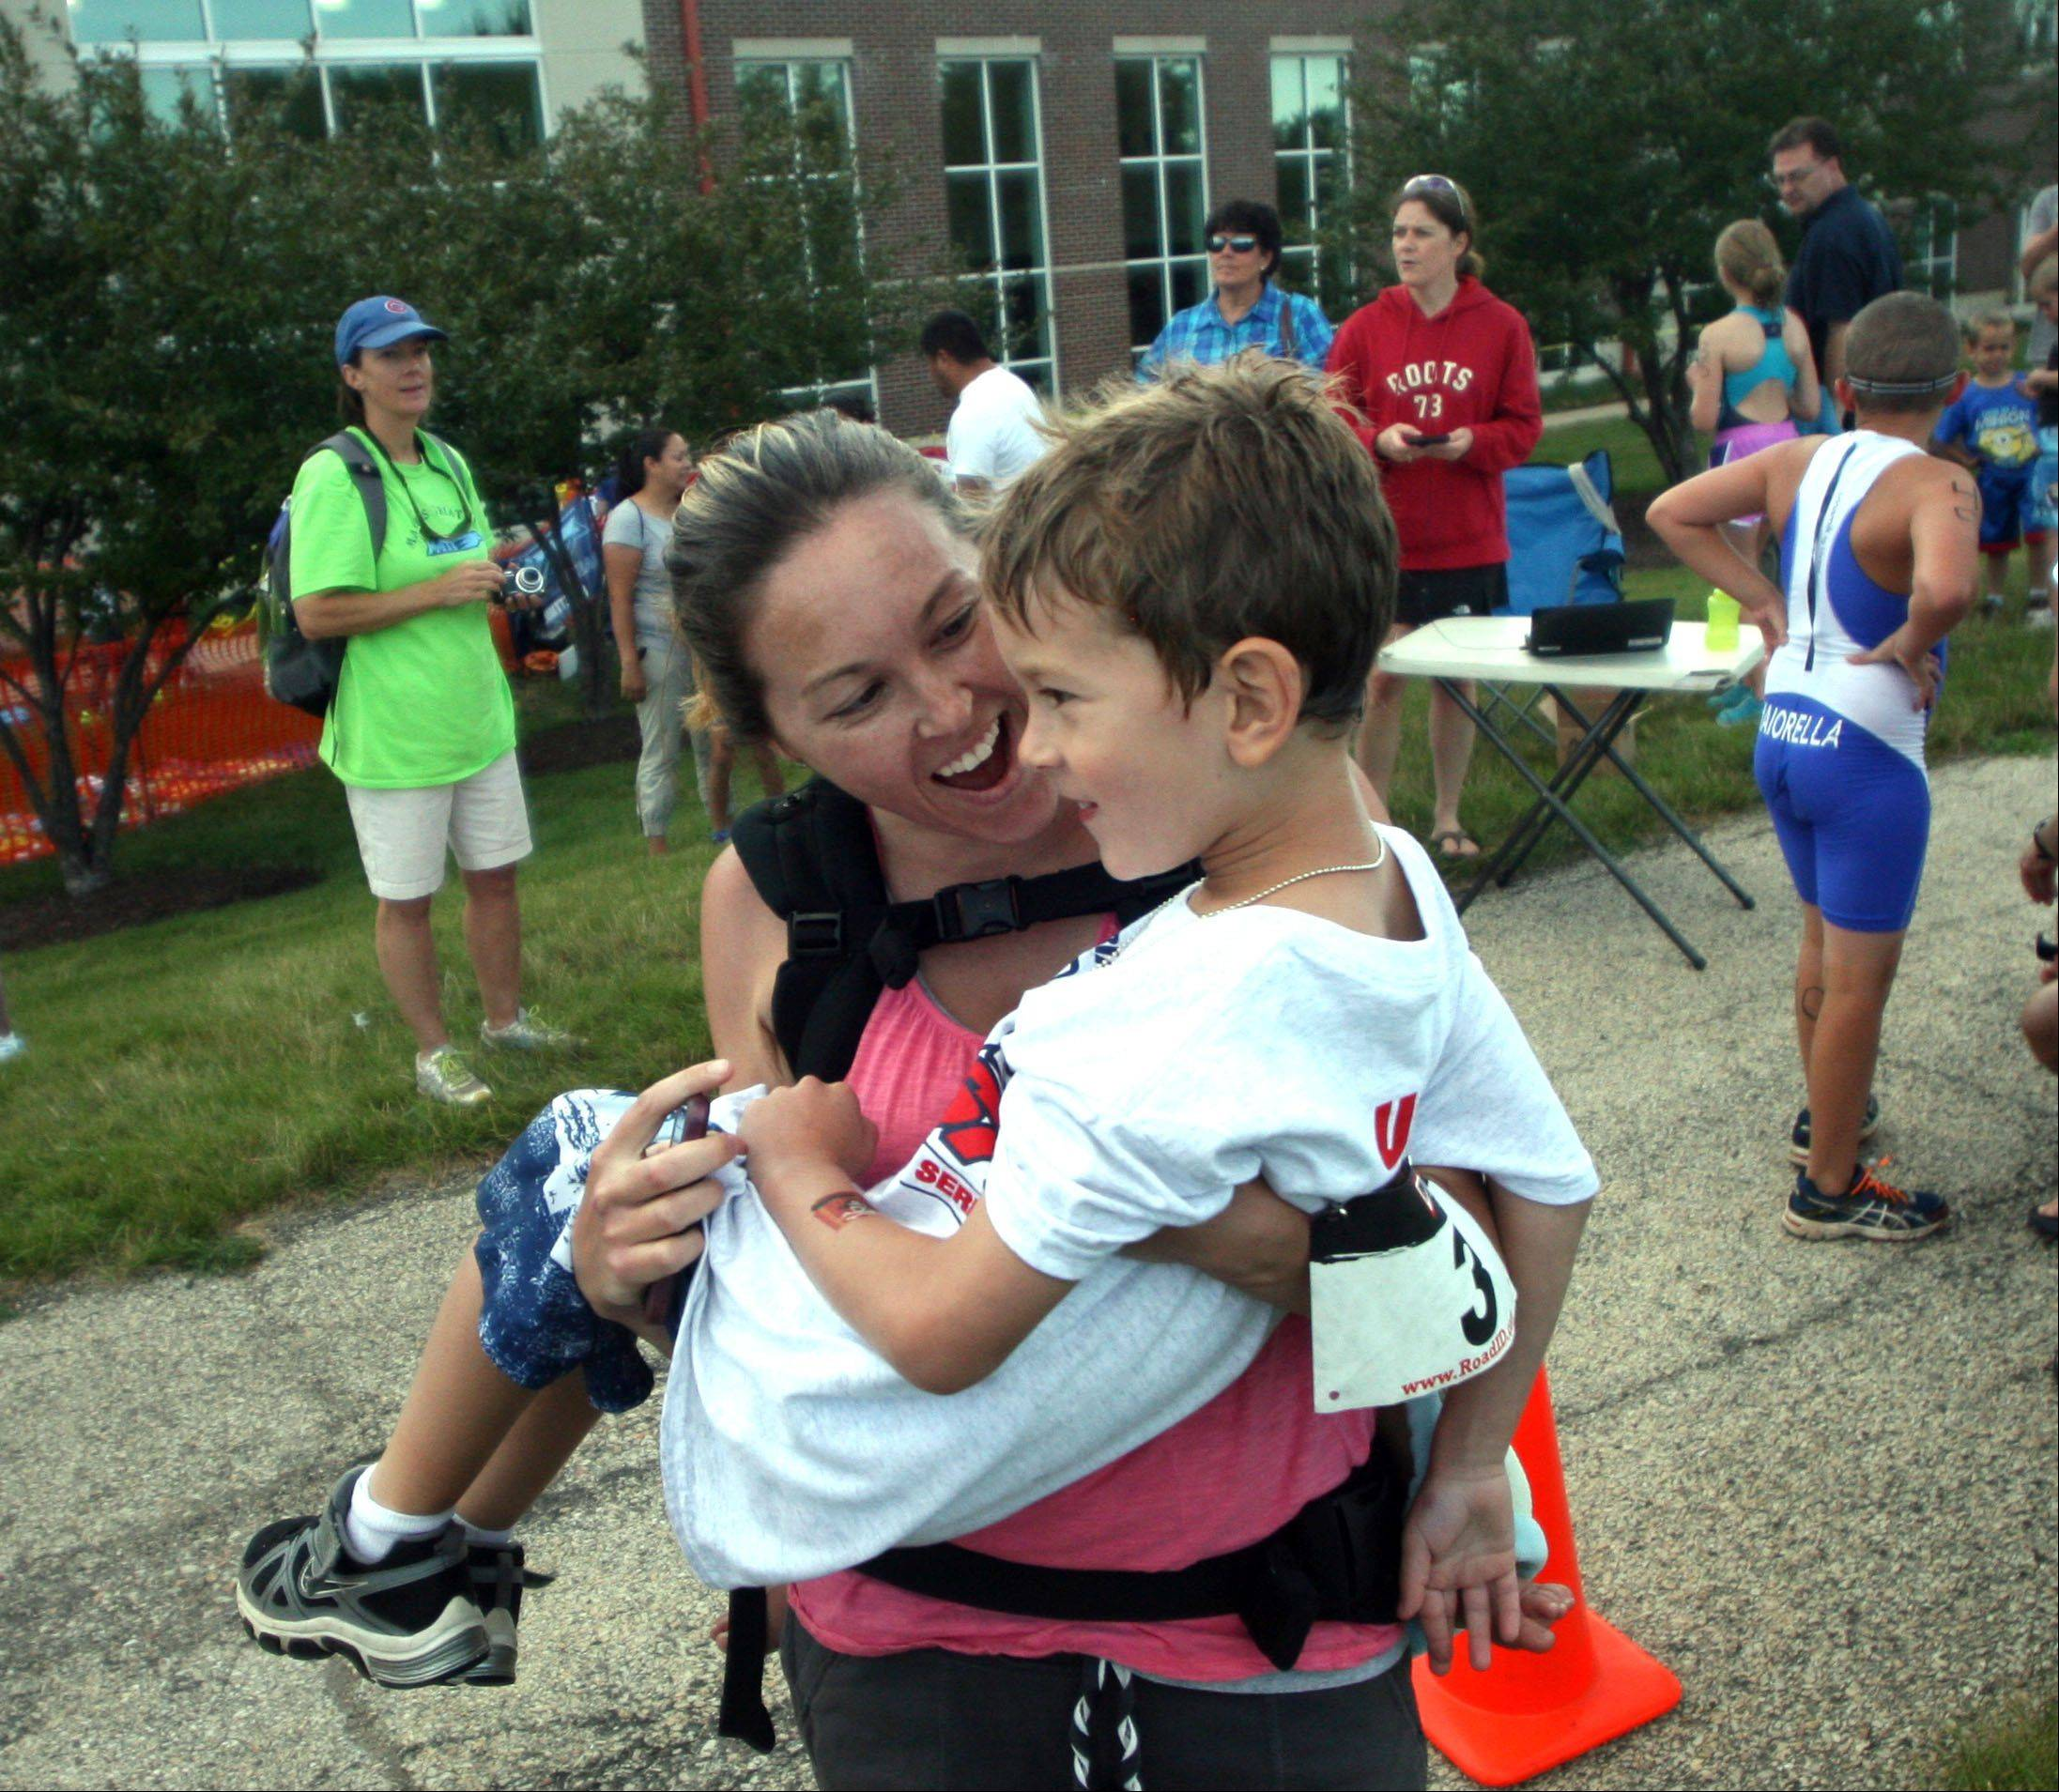 Contrell Muscari of St. Charles scoops up her son Dominic, 6, as she offers encouragement after he completed a 100-yard swim followed by a 1-km run in the Juniors event that was part of the MMTT Splash and Dash race at Cadence Fitness and Health Center in Geneva Wednesday night.